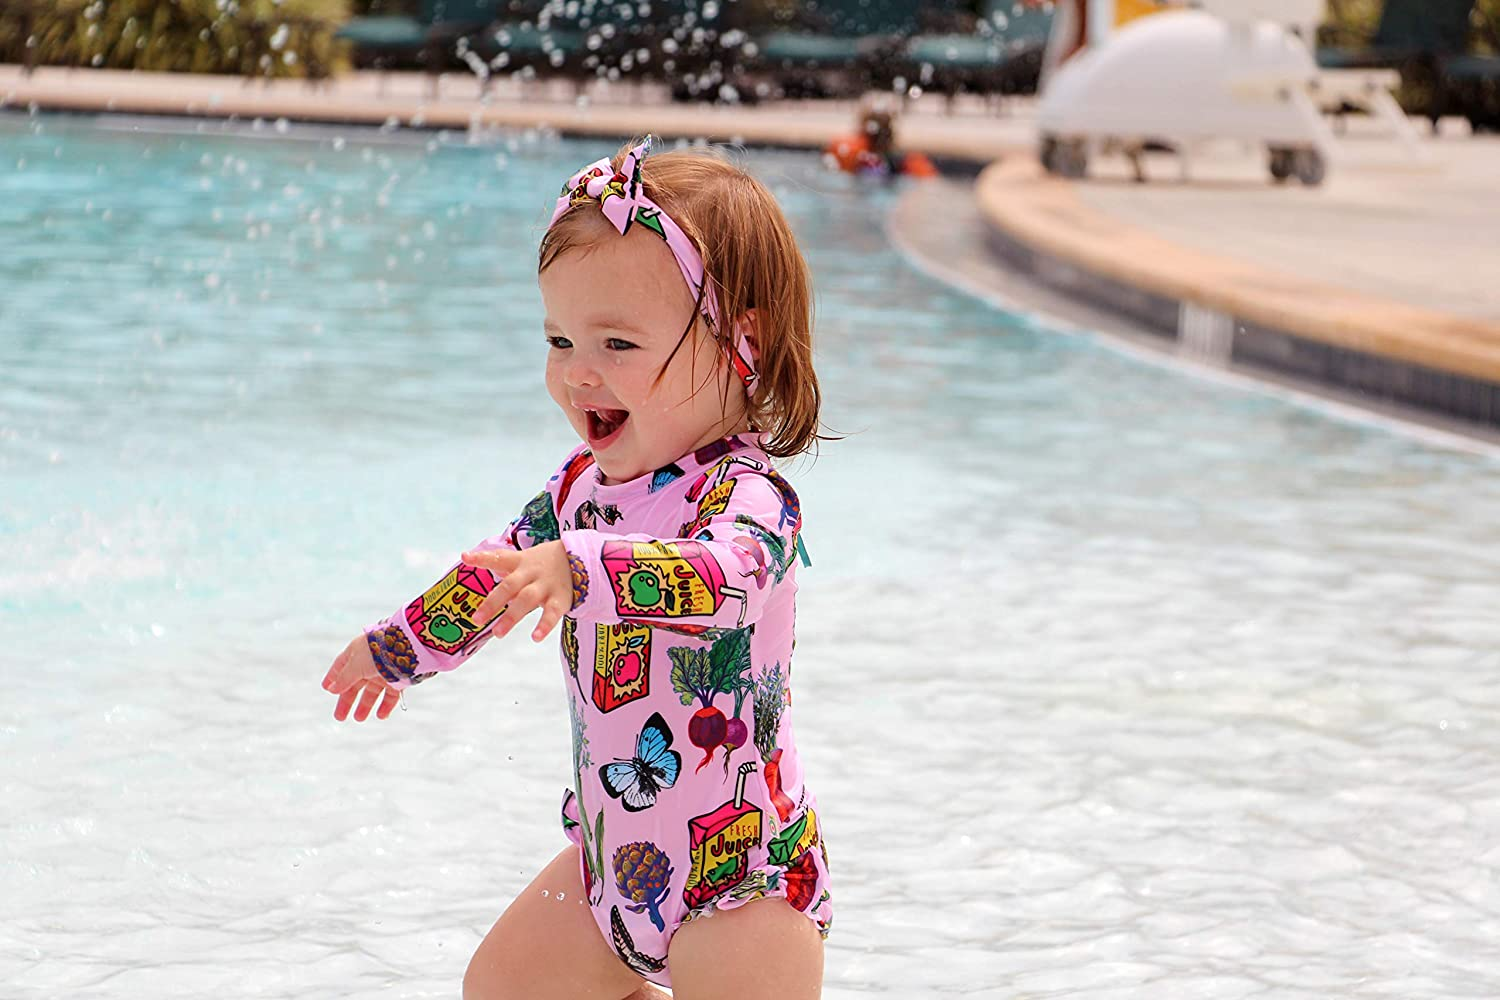 Sun Protection Long Sleeve One Piece Swimsuit and UV Sunsuit KRIO COLOR Baby Girl//Toddler UPF 50